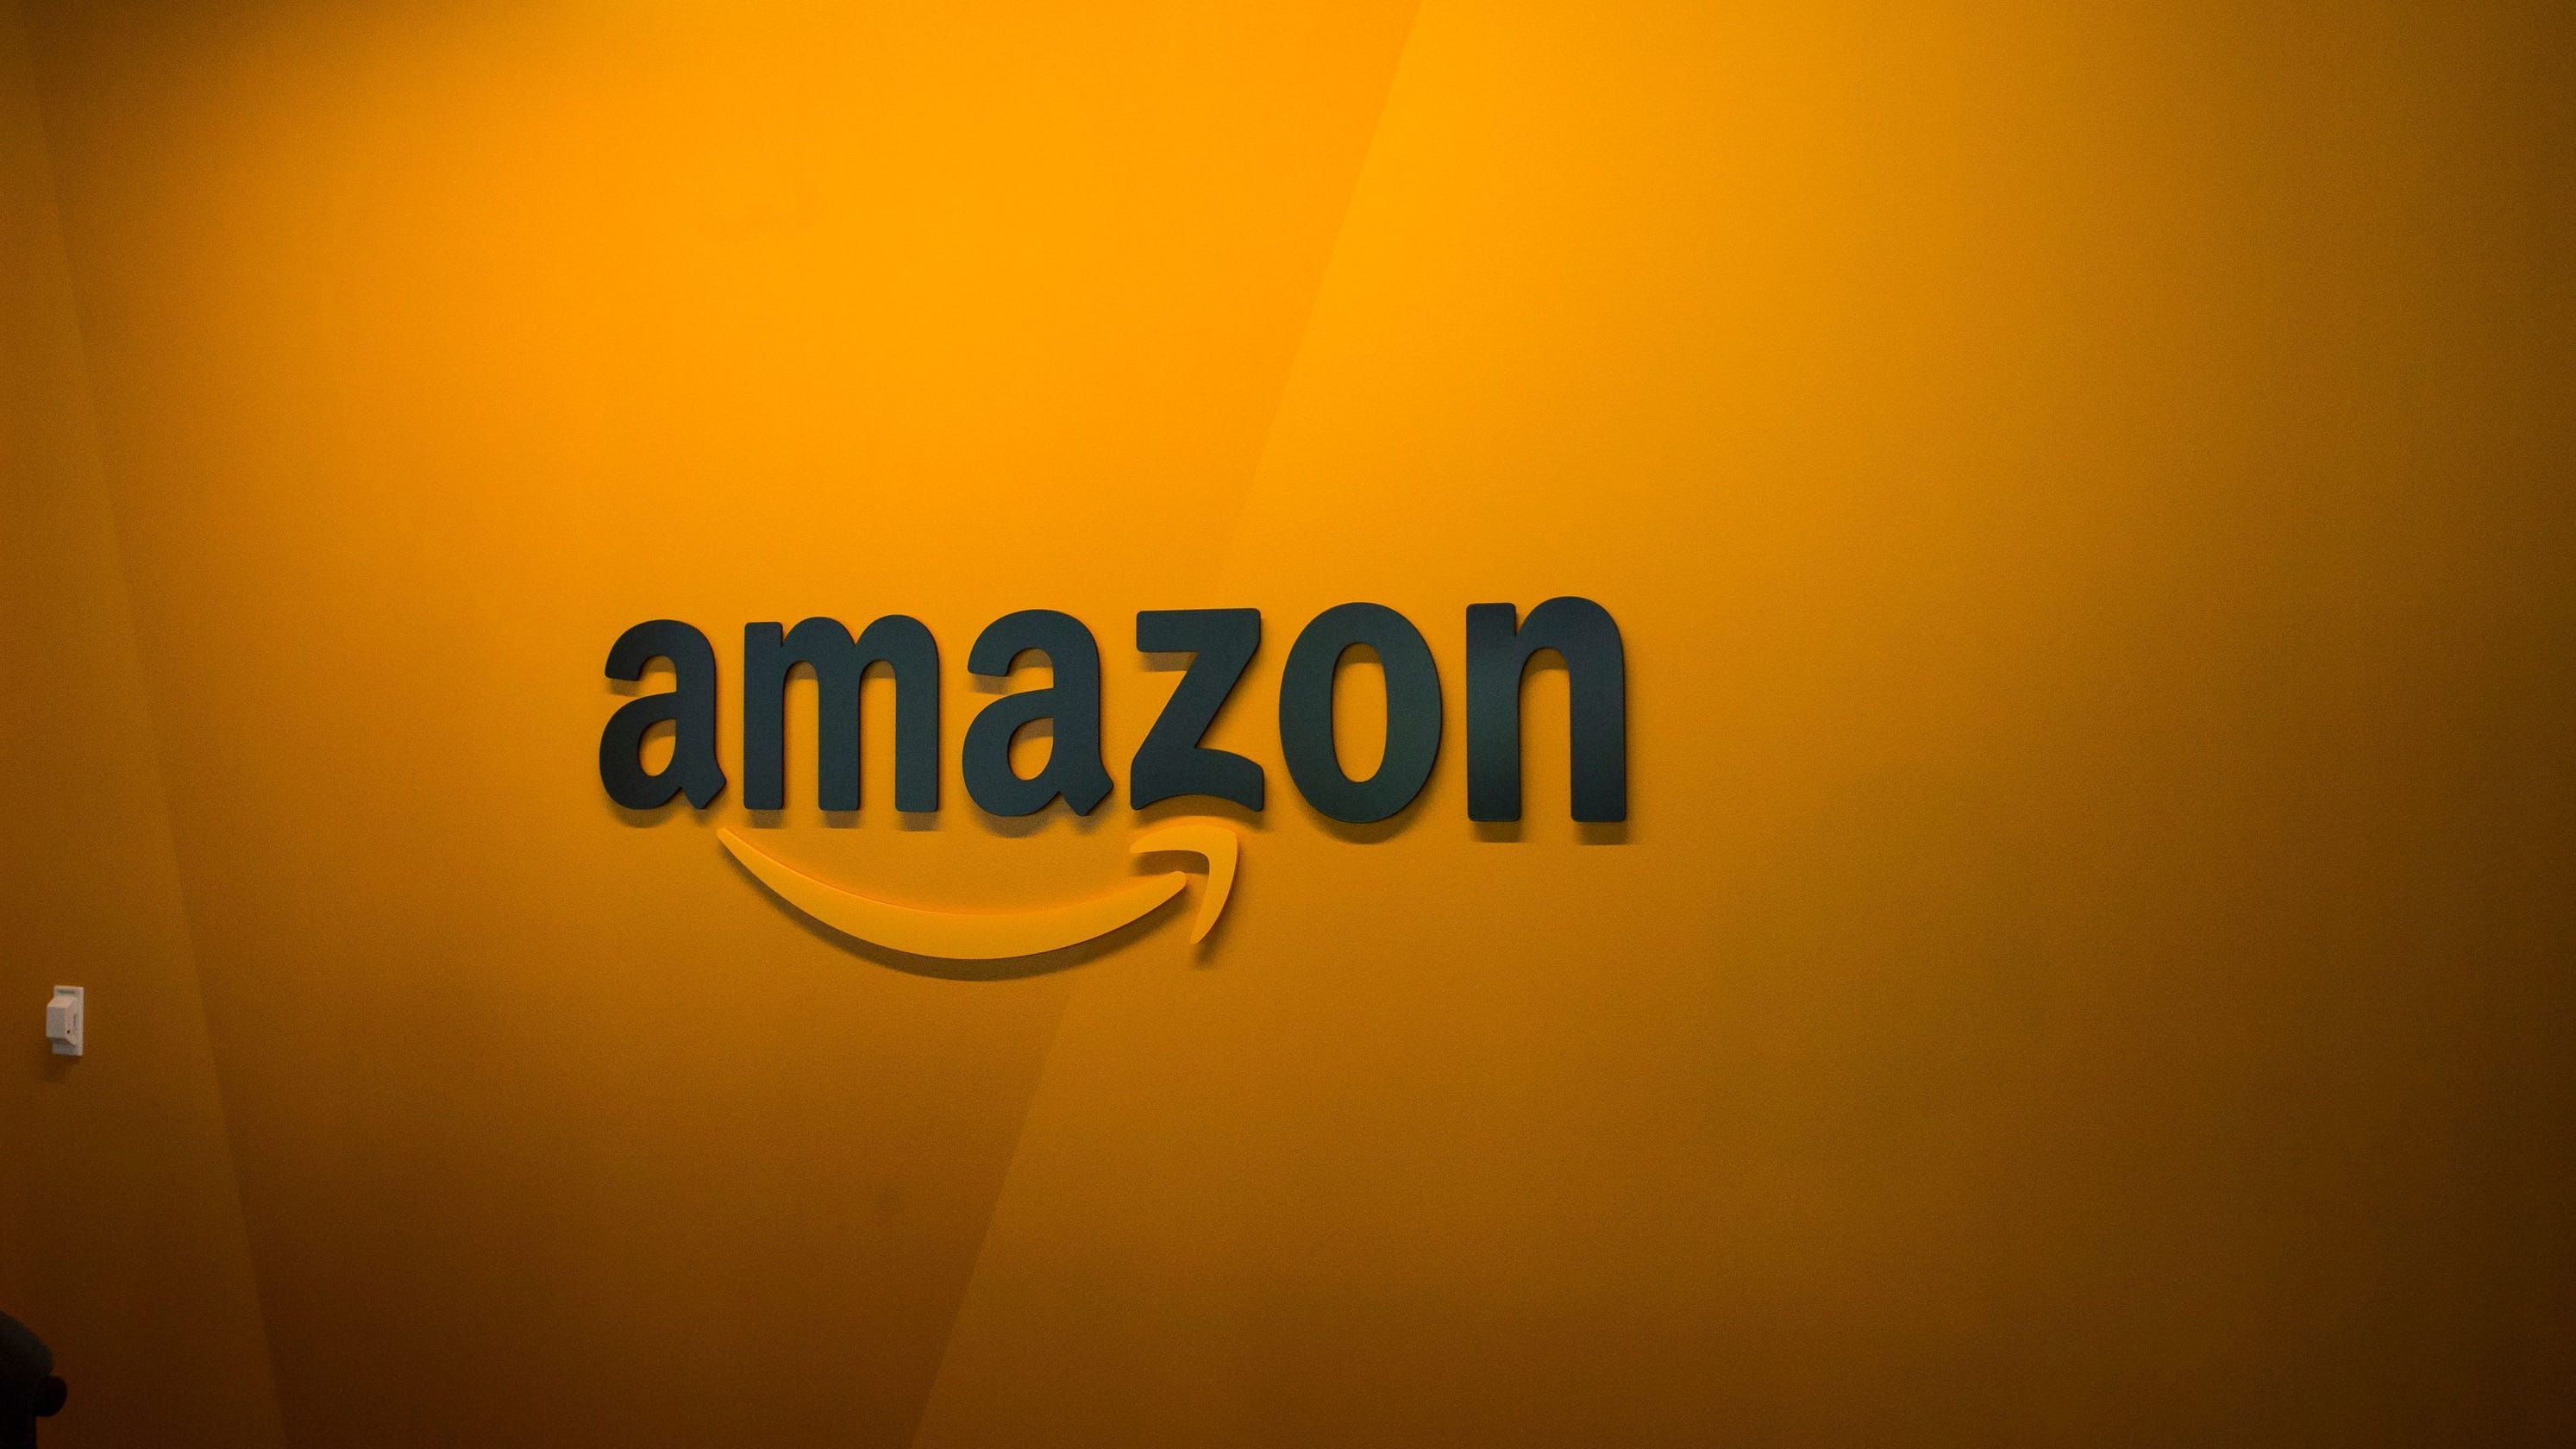 Amazon offers free money combined with irresistible deals!